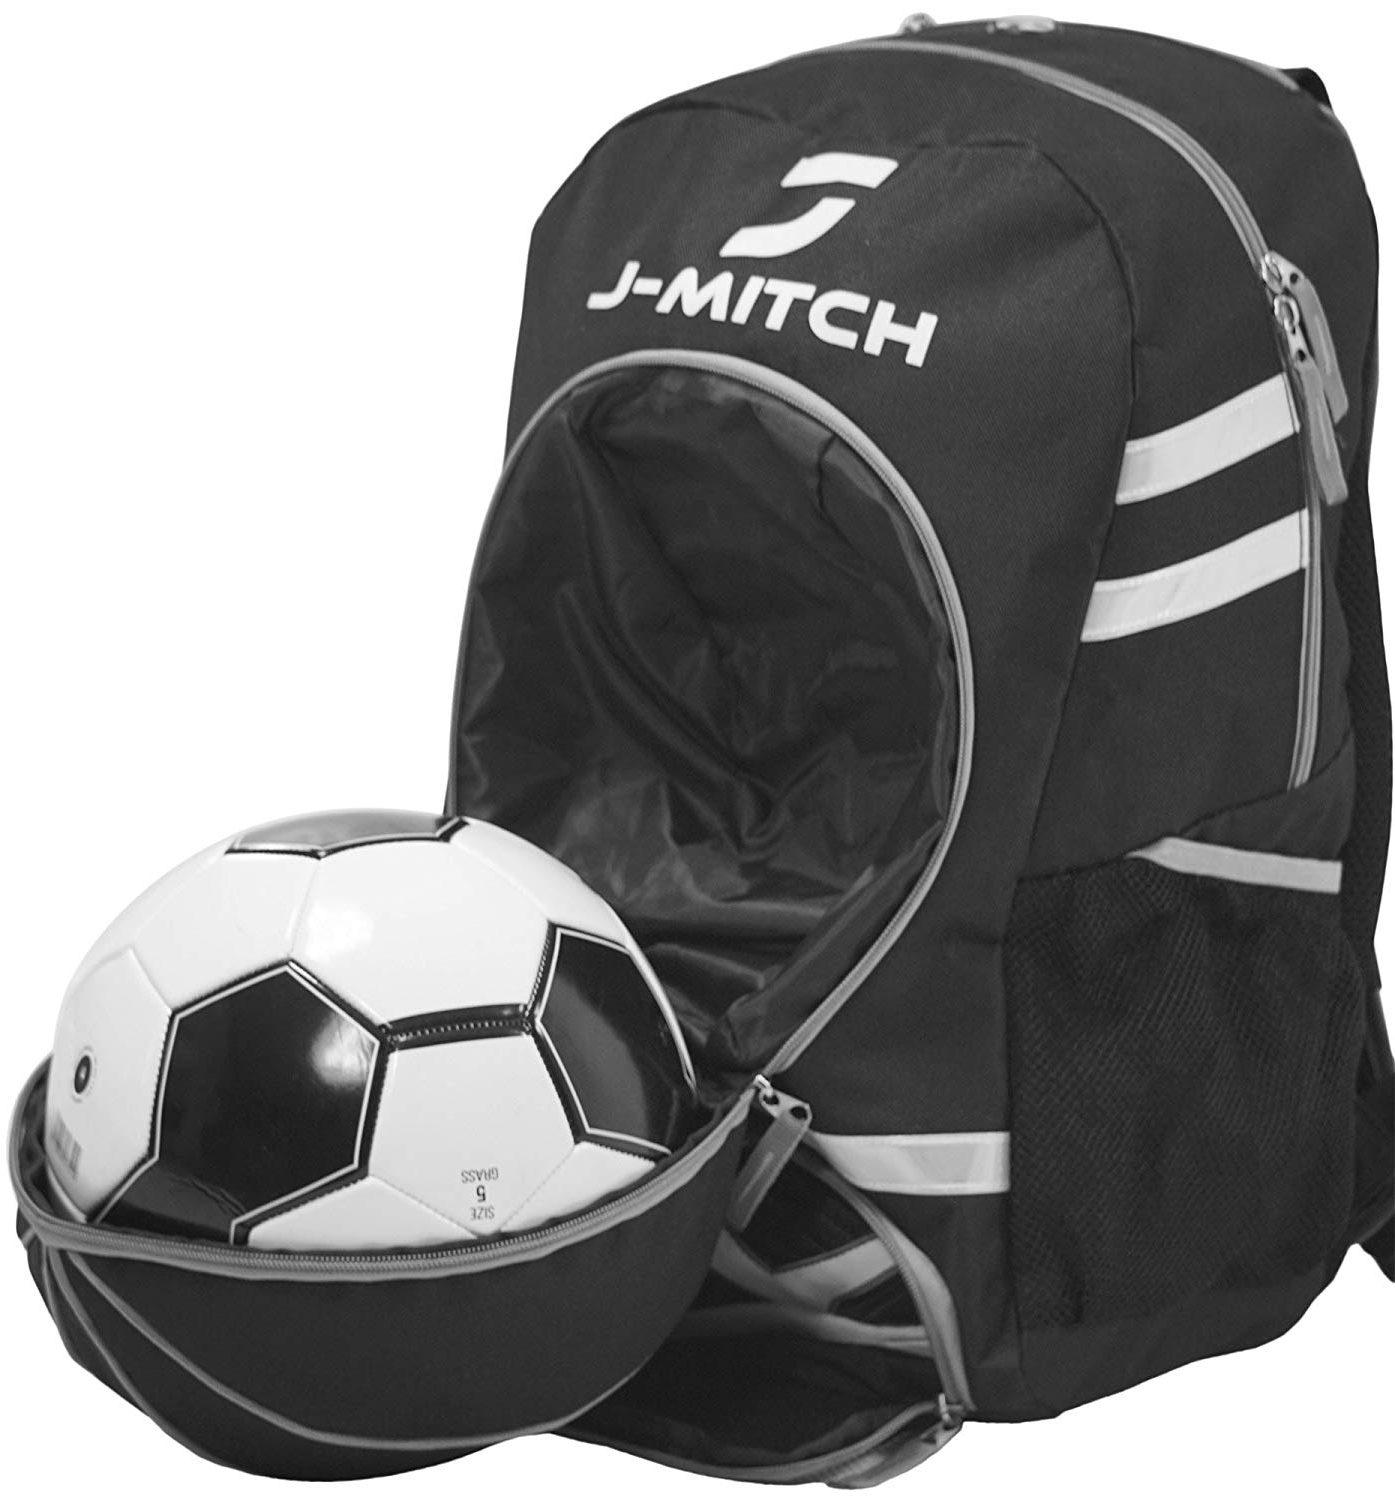 J-Mitch Soccer Bag